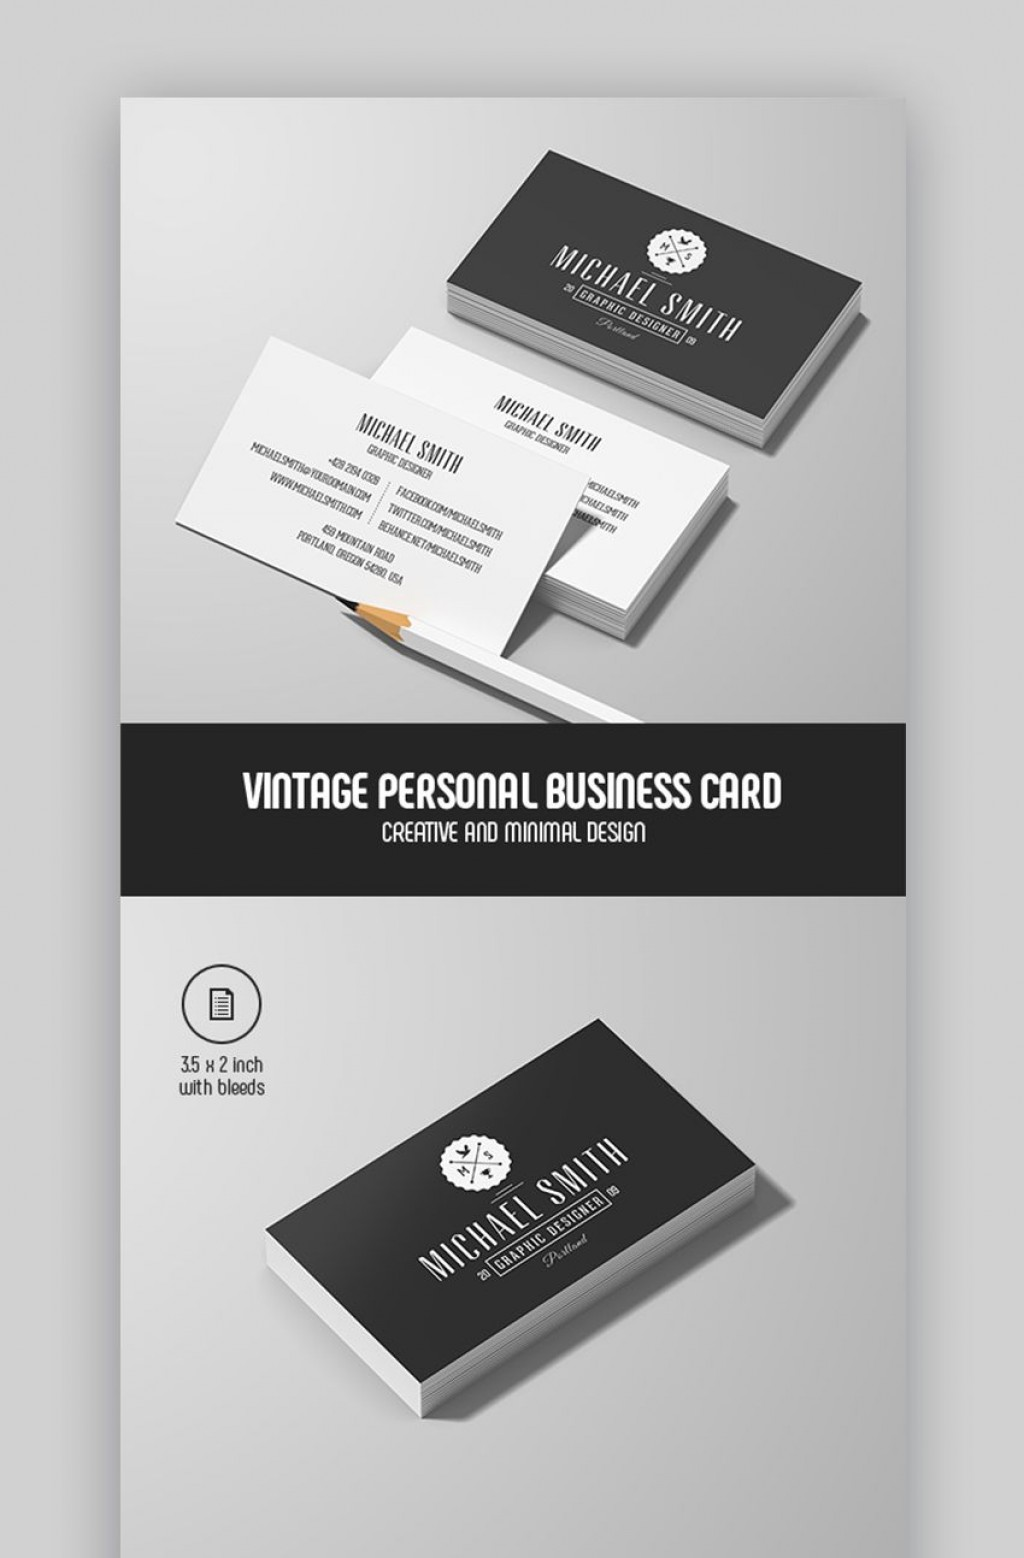 006 Awesome Personal Busines Card Template High Def  Trainer Design Psd FitnesLarge